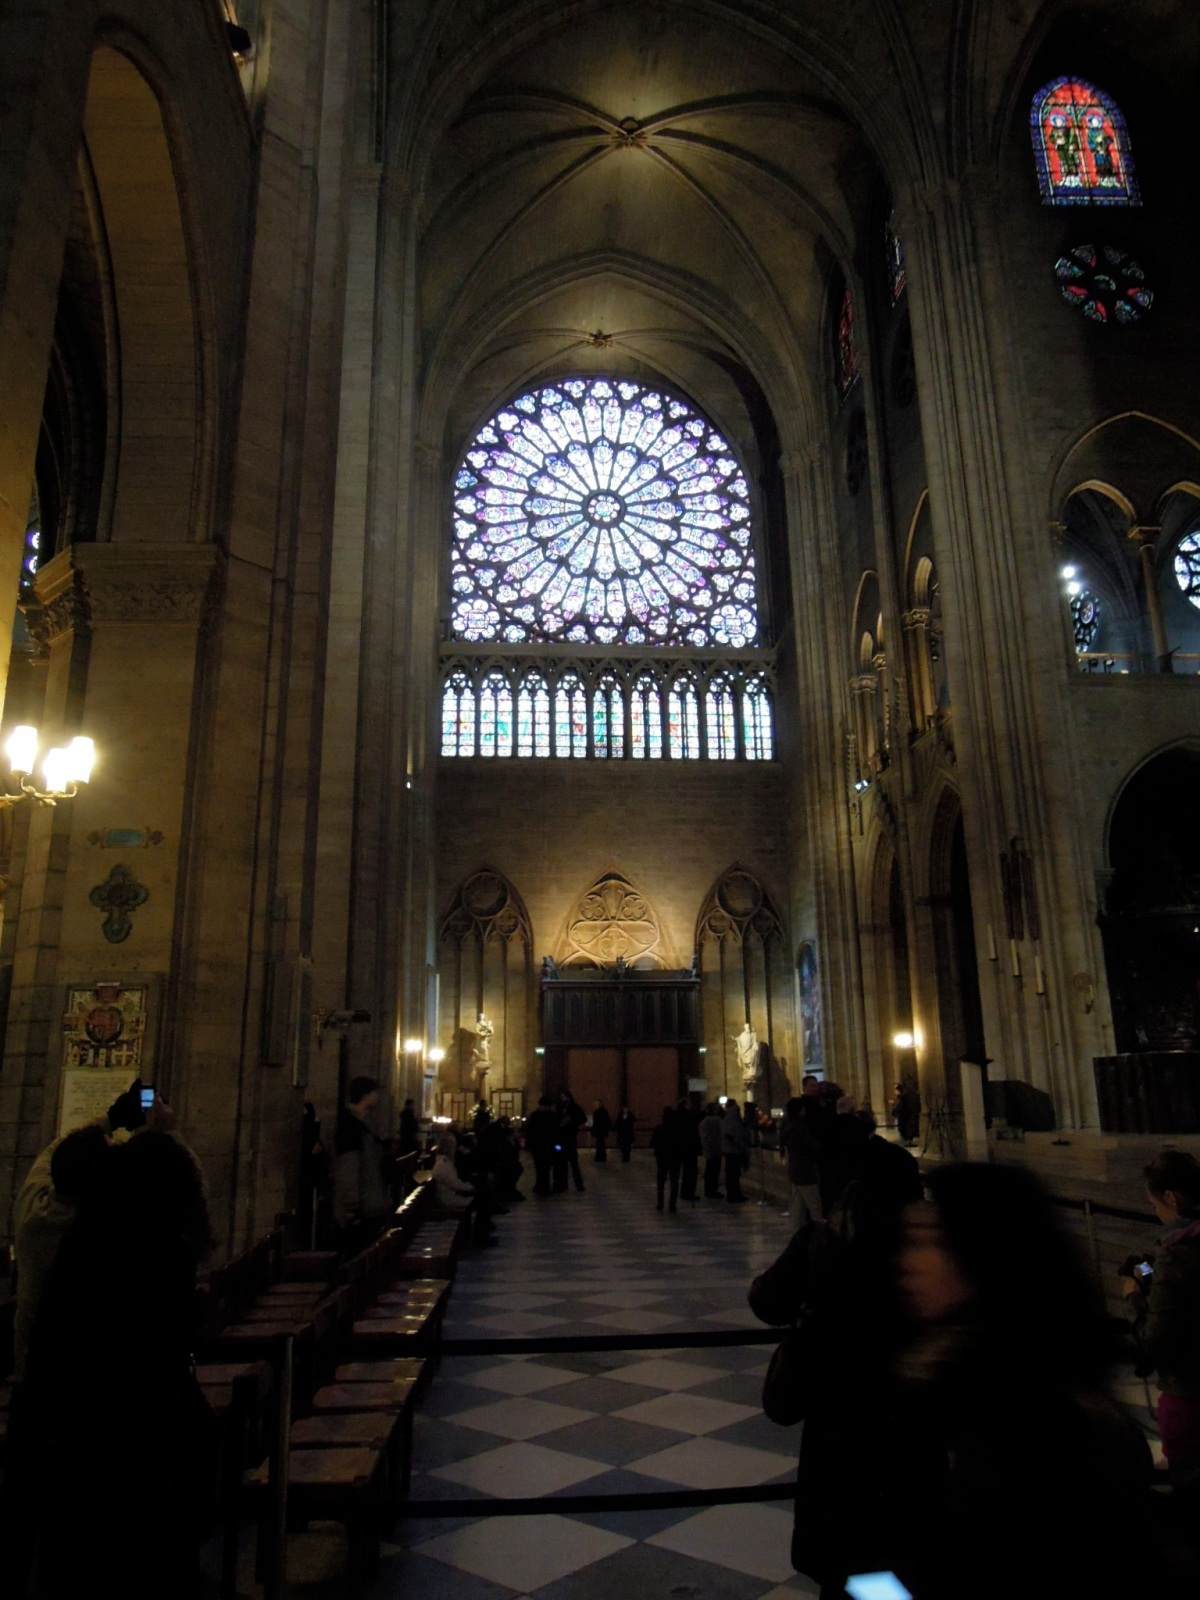 One of Notre Dame's famous rose windows.